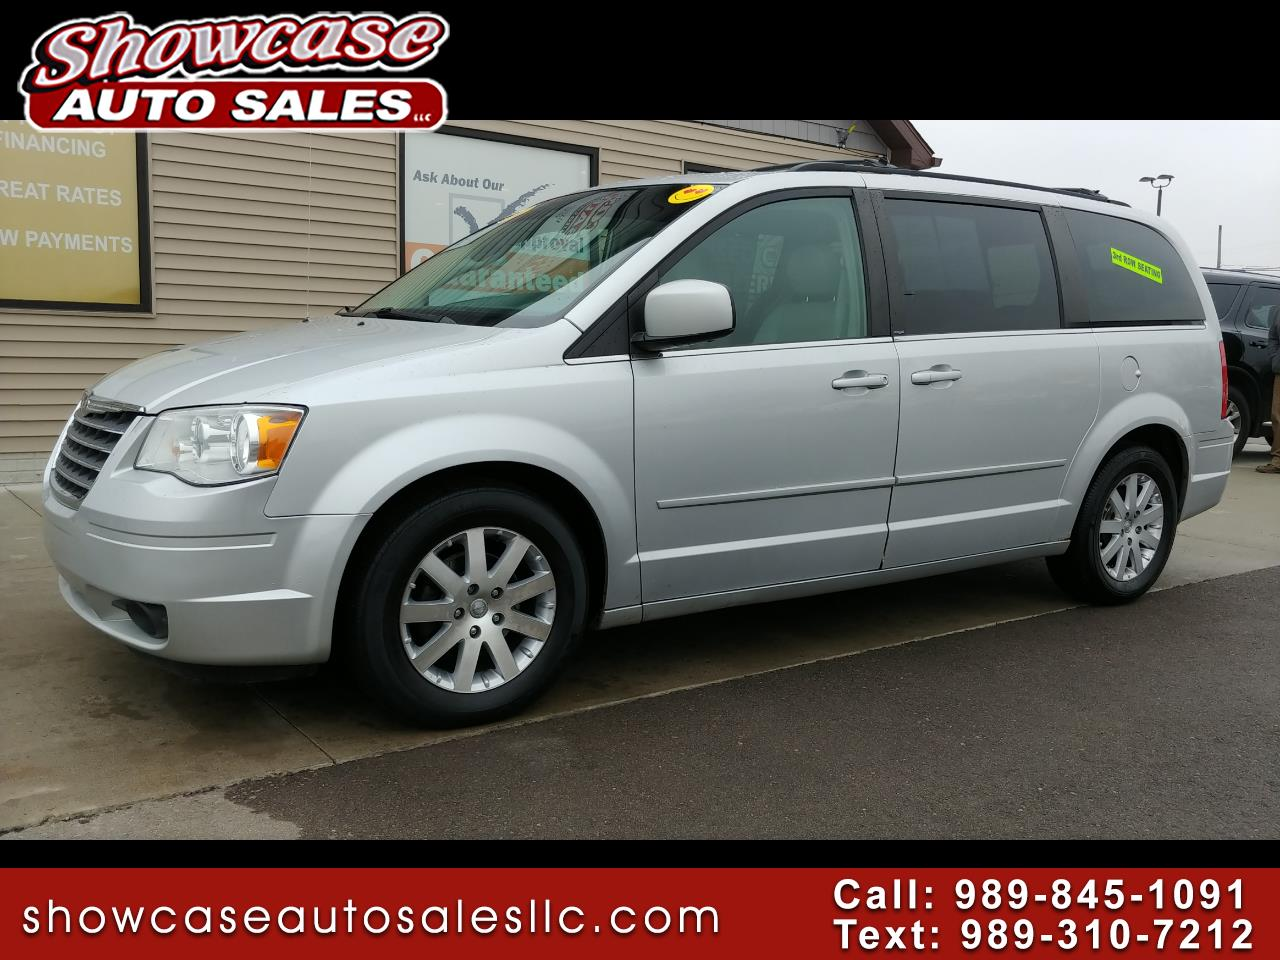 2008 Chrysler Town & Country 4dr Wgn Touring